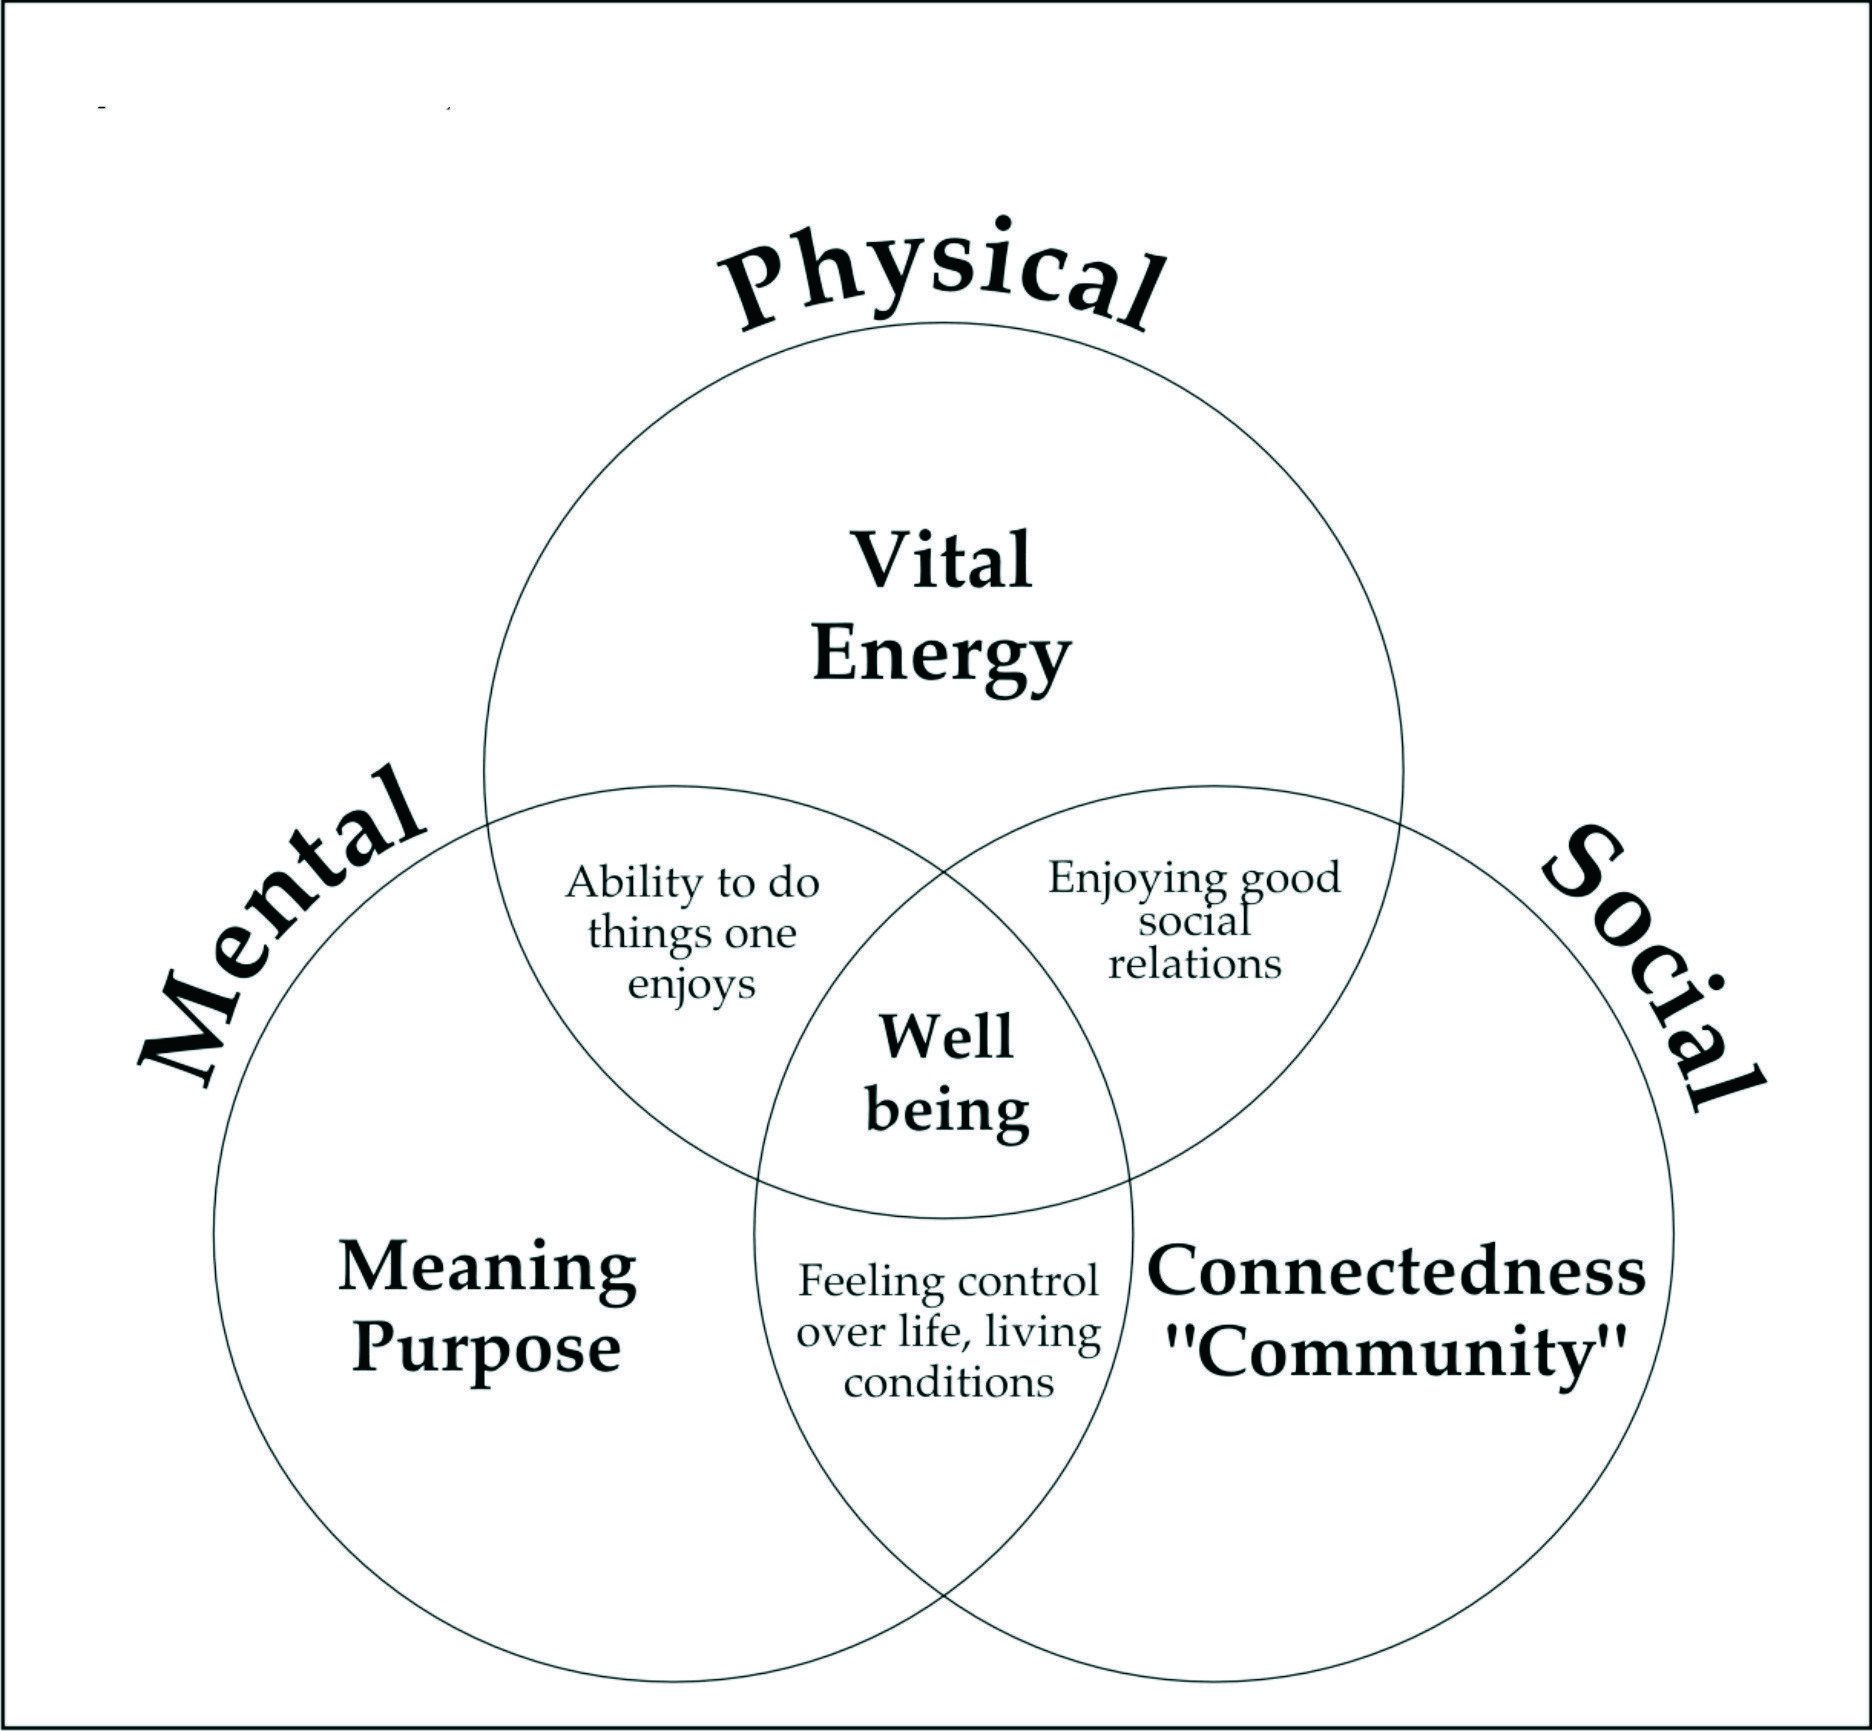 Physical Health Is The State Of Being Free From Illness Or